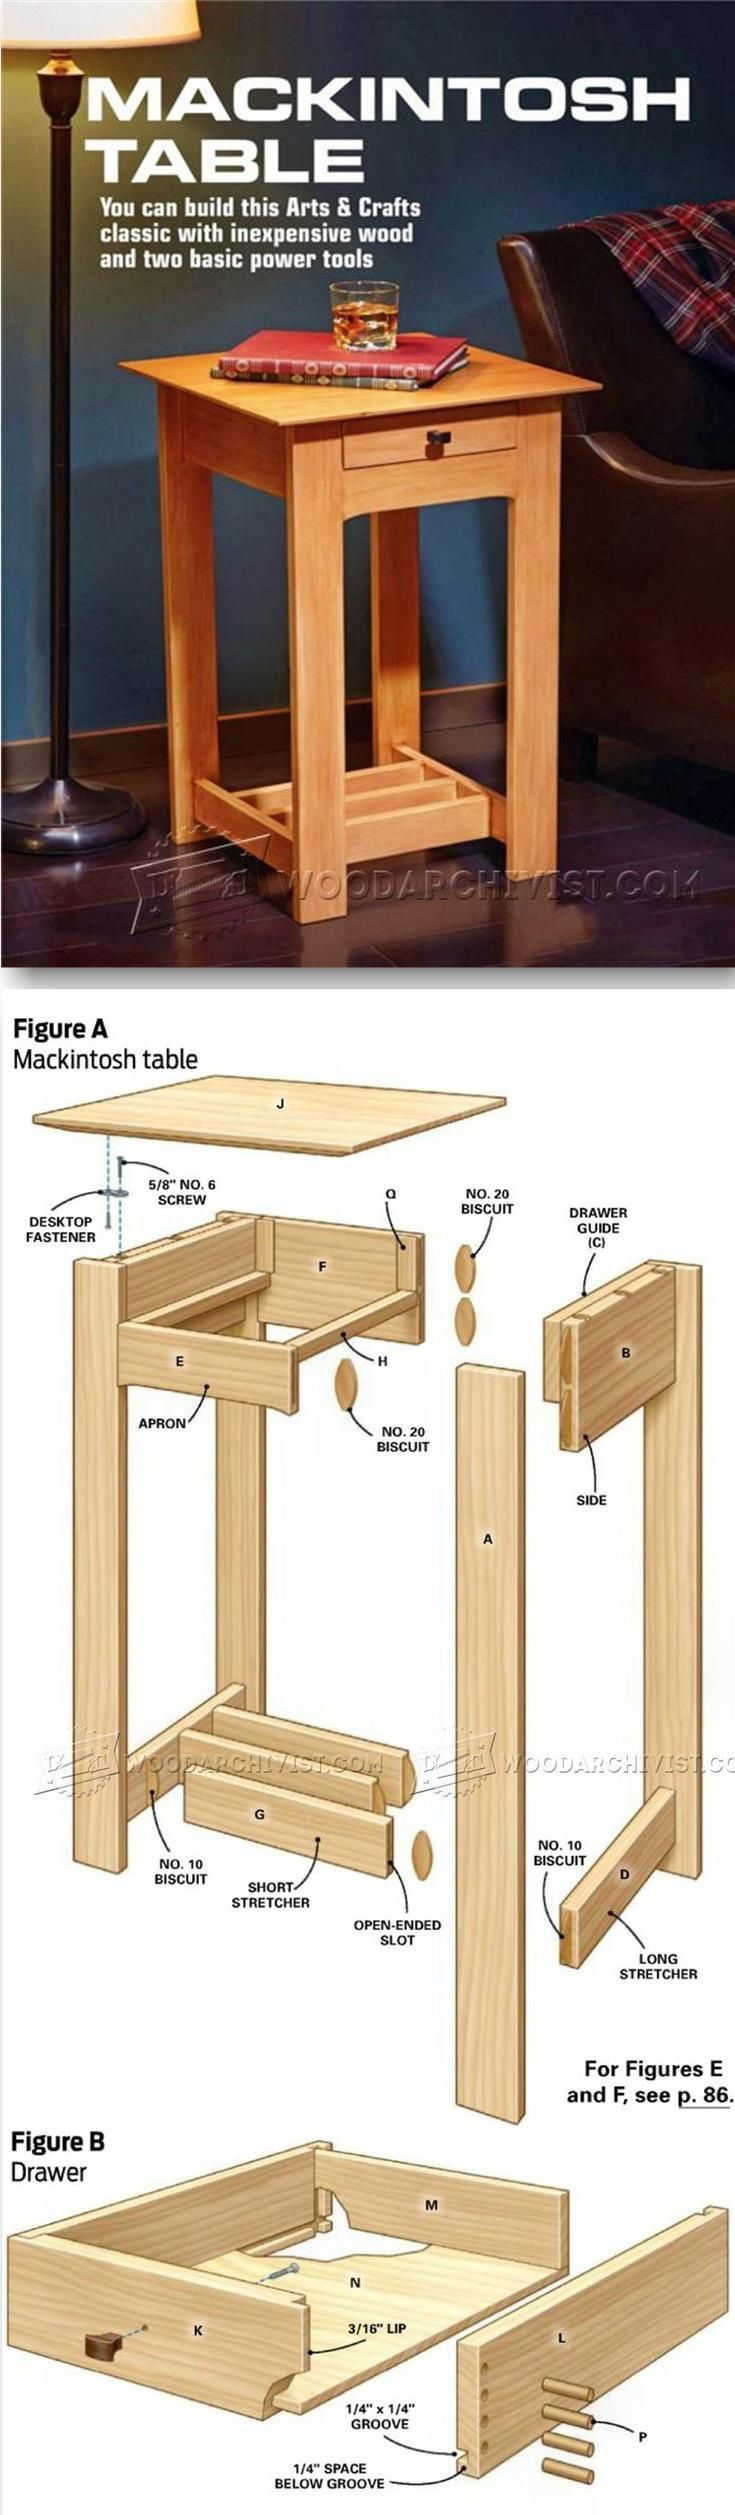 36 best end tables images on pinterest woodworking furniture mackintosh table plans furniture plans and projects woodarchivist woodworking blueprintswoodworking malvernweather Gallery